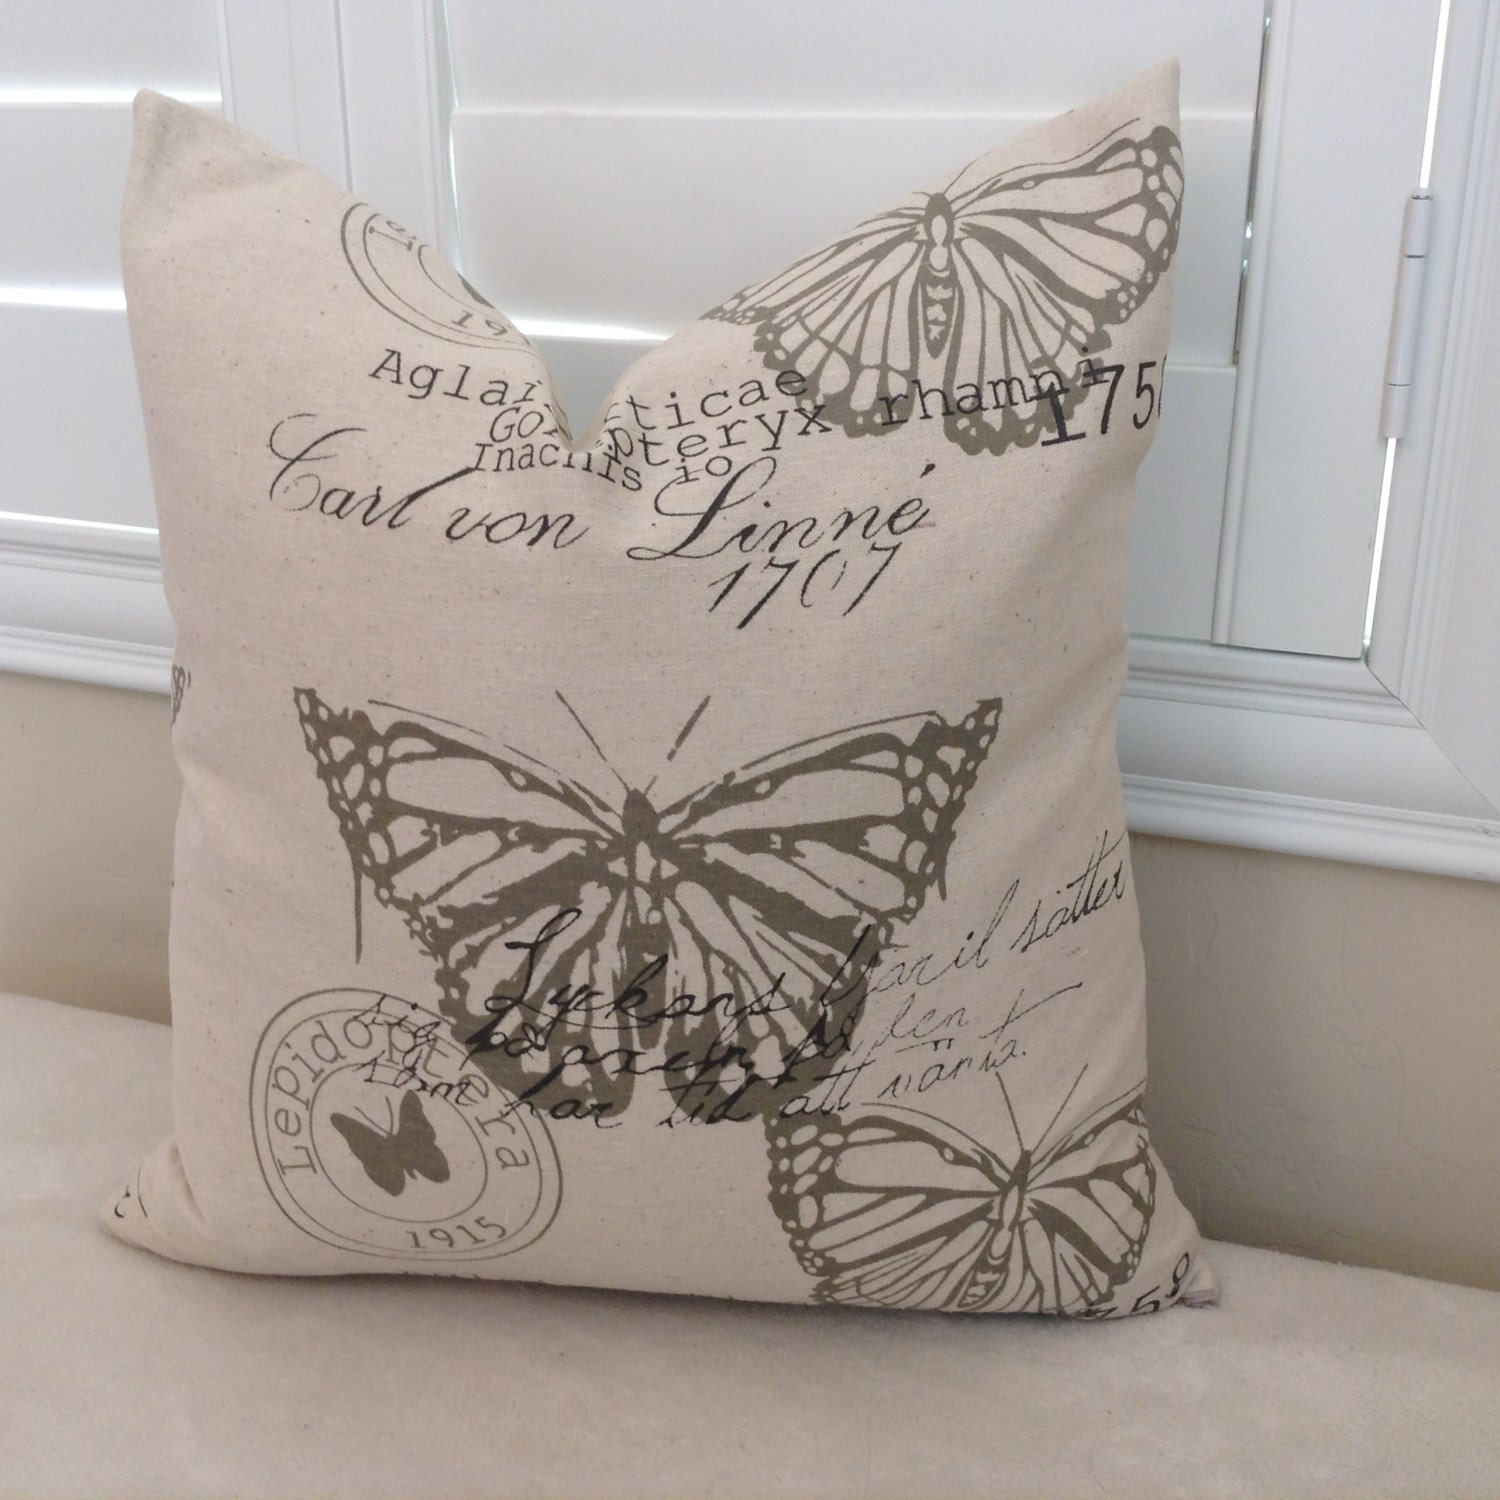 Throw Pillow Covers Washable : Jute Butterfly print pillow cover throw pillow washable